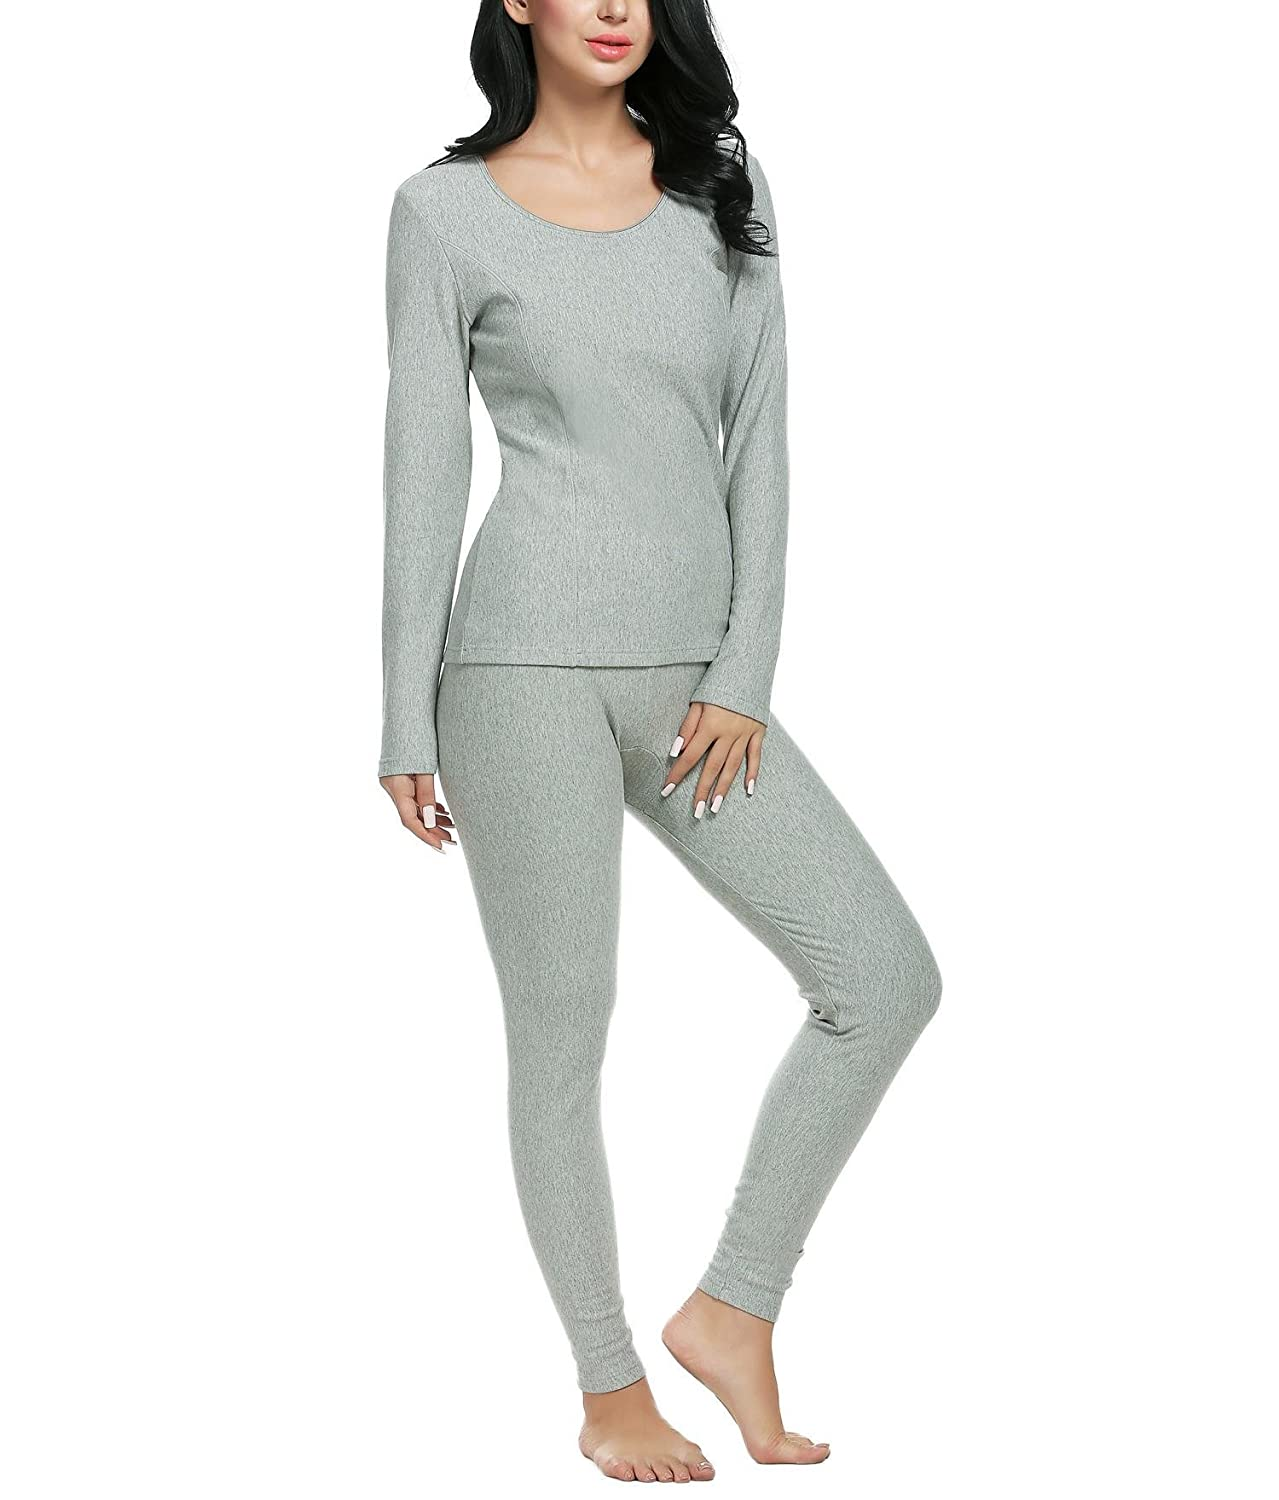 Opino Women's Thermal Underwear Set Top & Bottom Smooth Knit Winter Base Layering Set